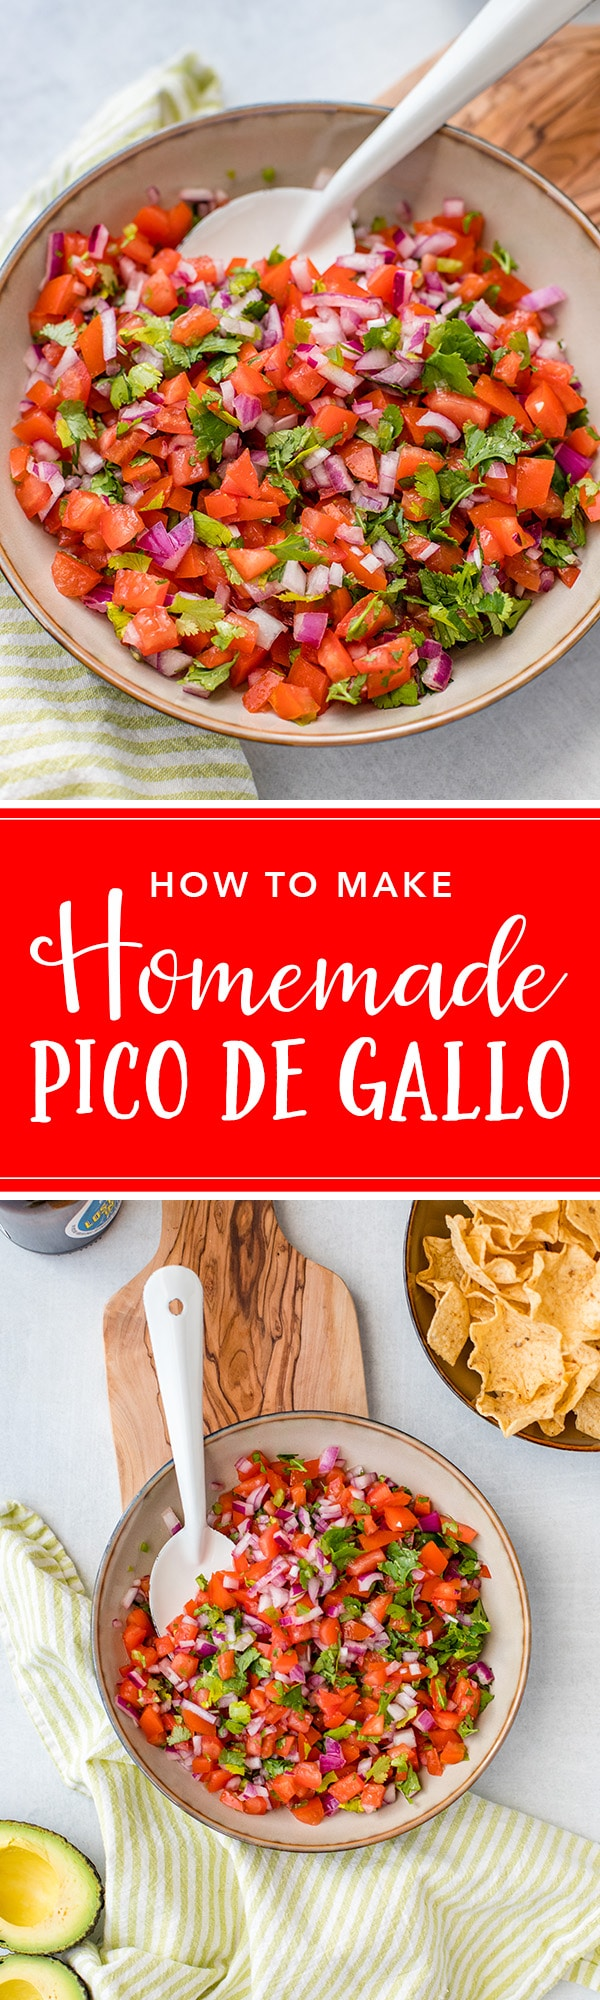 Homemade pico de gallo is easy to make, delicious, and much more fresh than any packaged product. The perfect homemade salsa! #picodegallo #salsa #texmex